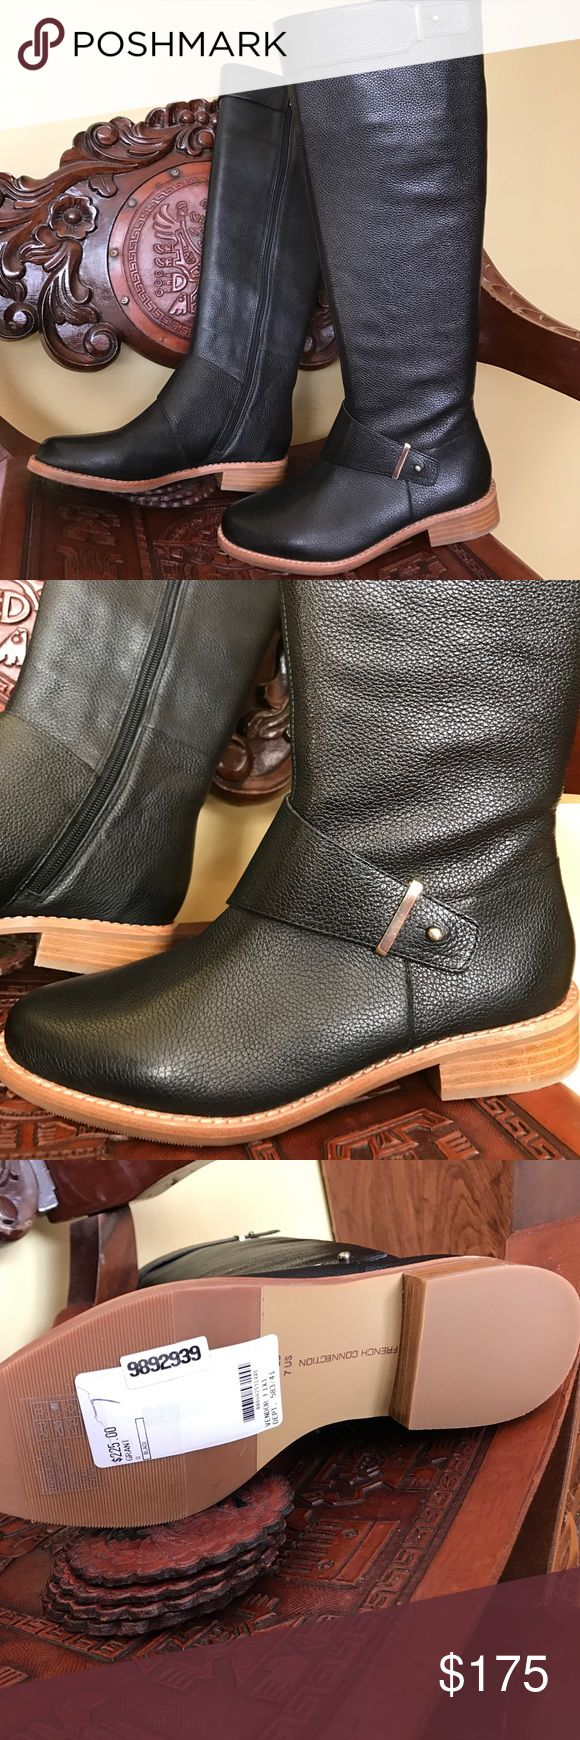 French connection grain leather boots Amazing, warm and so comply soft grain leather boots. With black furry lining giving a luxurious feel. So chic and trendy, perfect for city walk. I a 7.5 but these fit me fine. Sold out paid $225 plus tax in NYC. Knee high. French Connection Shoes